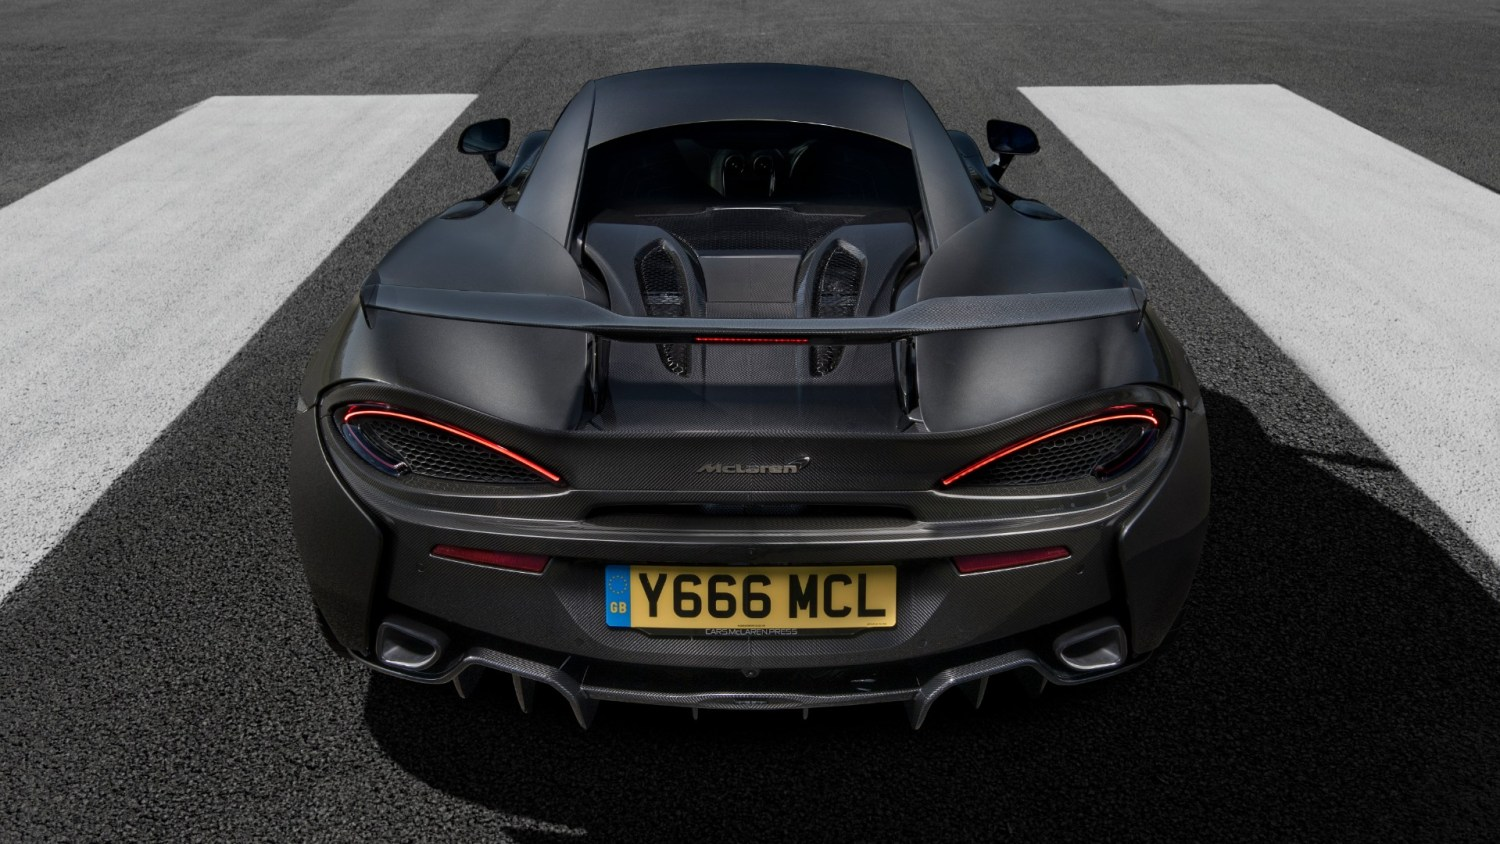 MSO Defined High Downforce Kit for McLaren 570